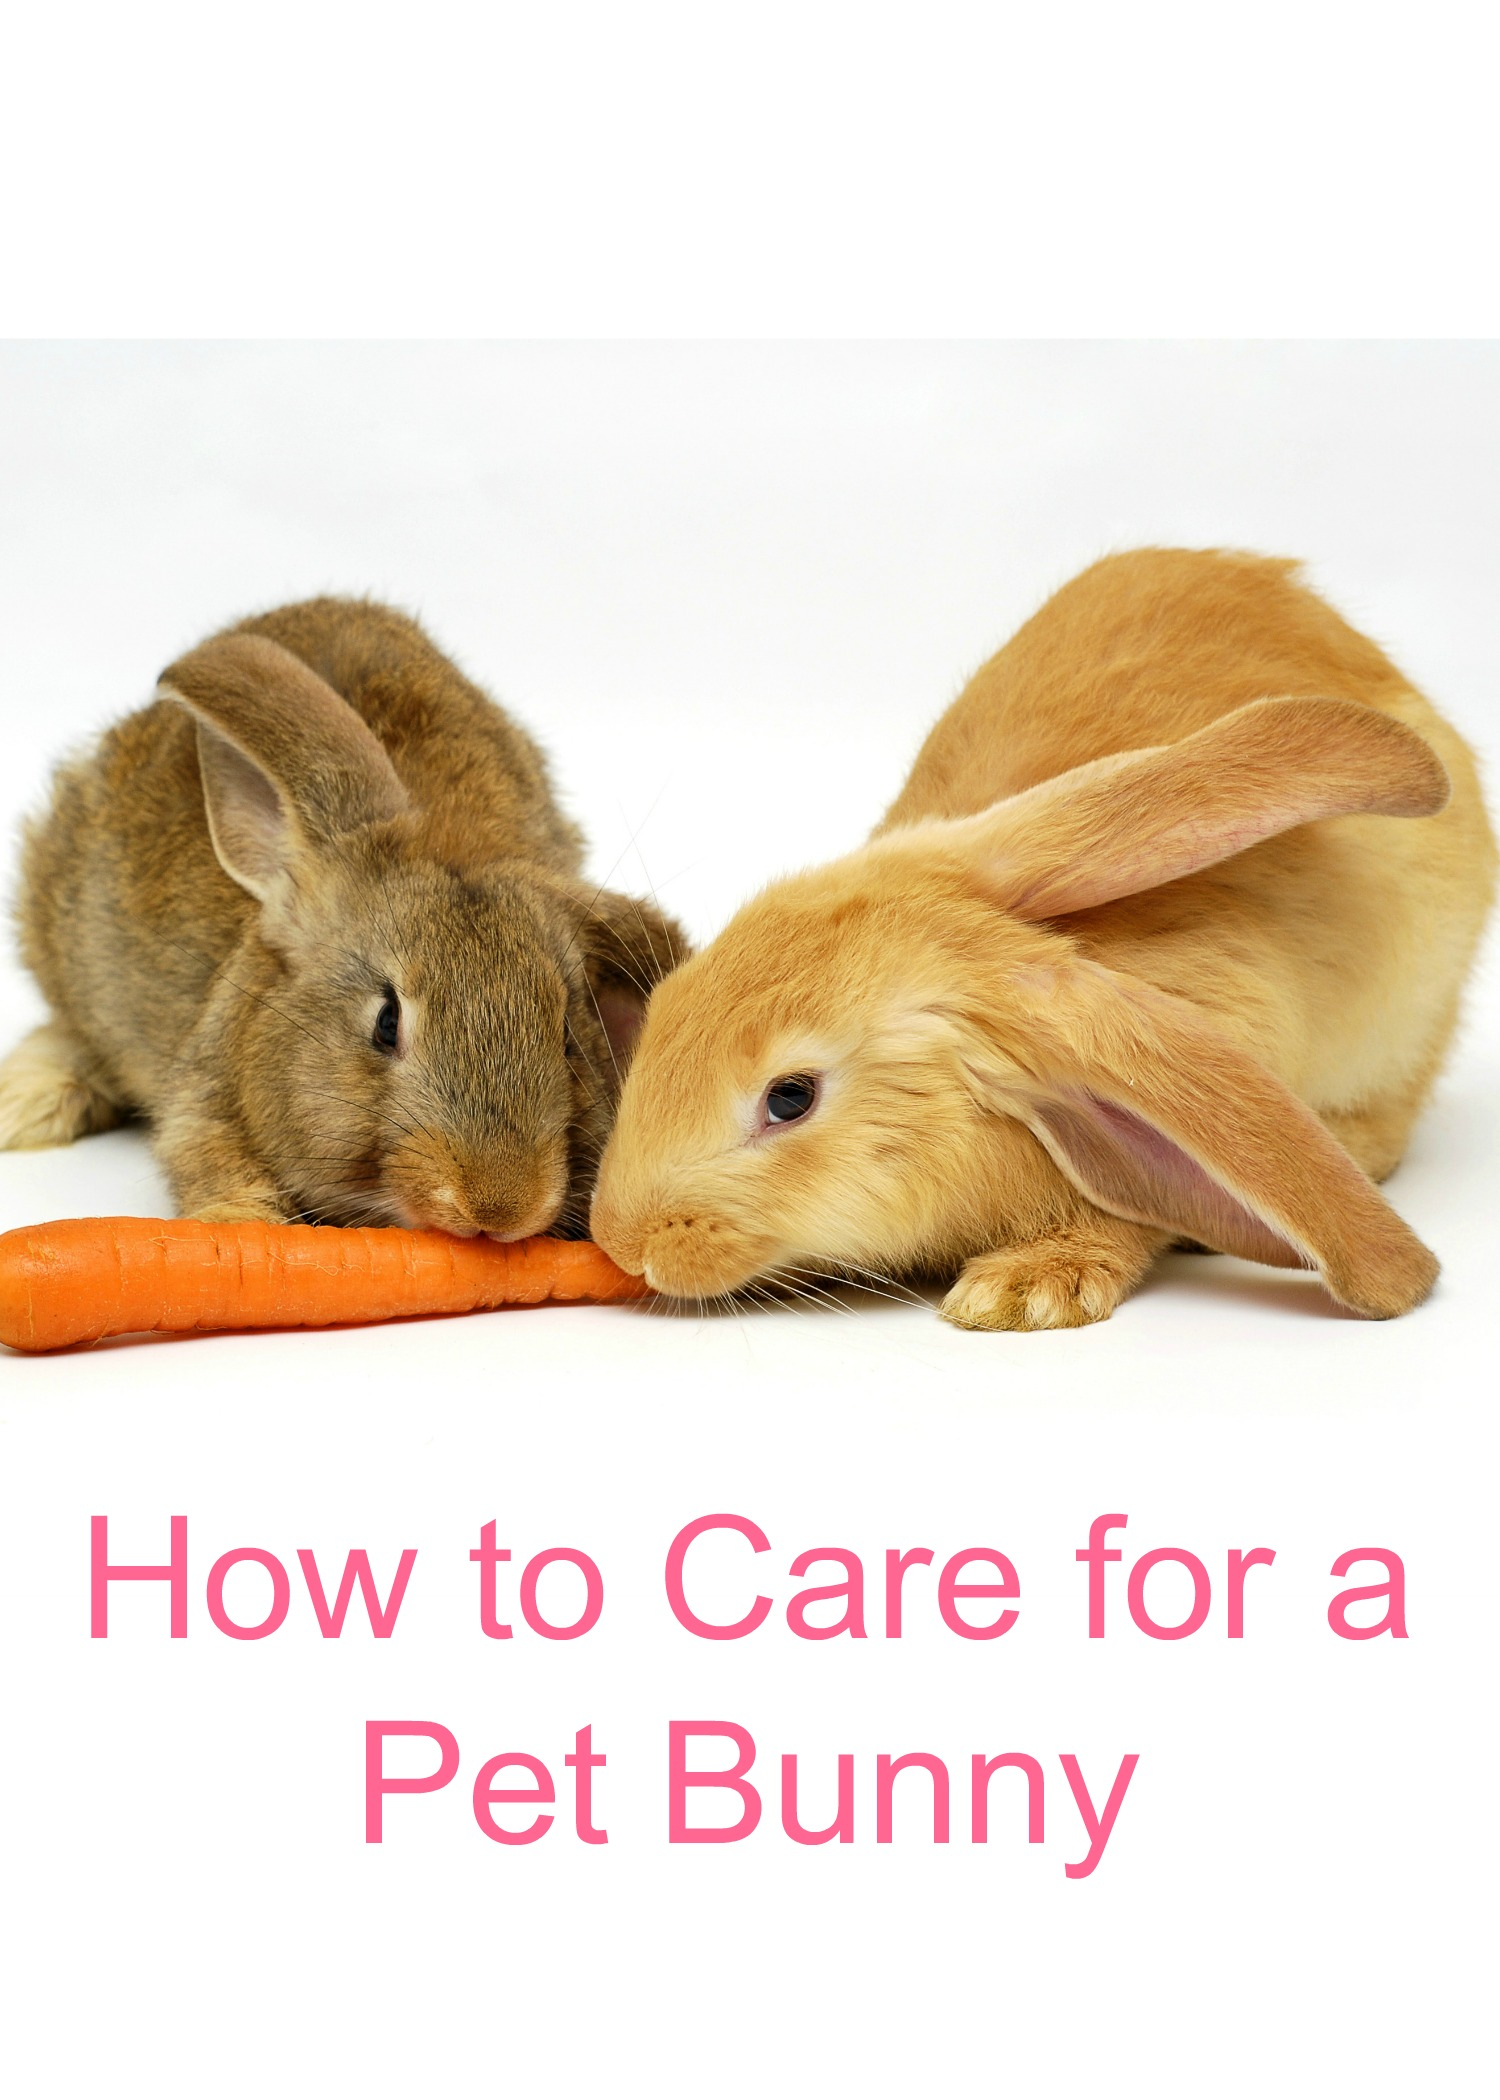 How to Care for a Pet Bunny